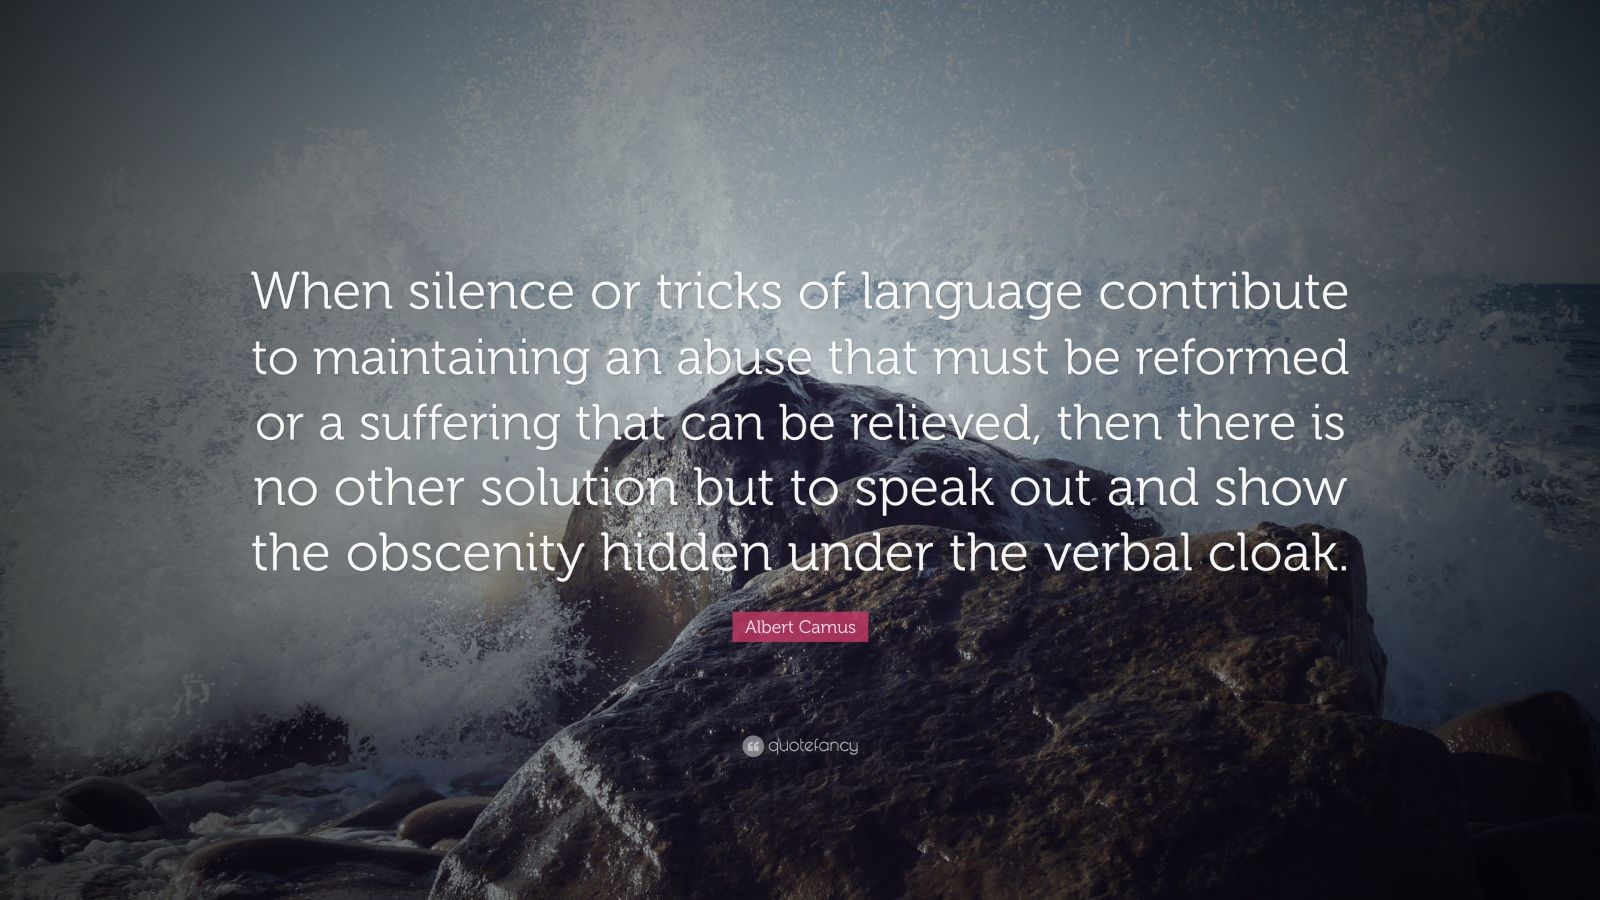 "Albert Camus Quote: ""When silence or tricks of language contribute to maintaining an abuse that must be reformed or a suffering that can be relieved, then there is no other solution but to speak out and show the obscenity hidden under the verbal cloak."""